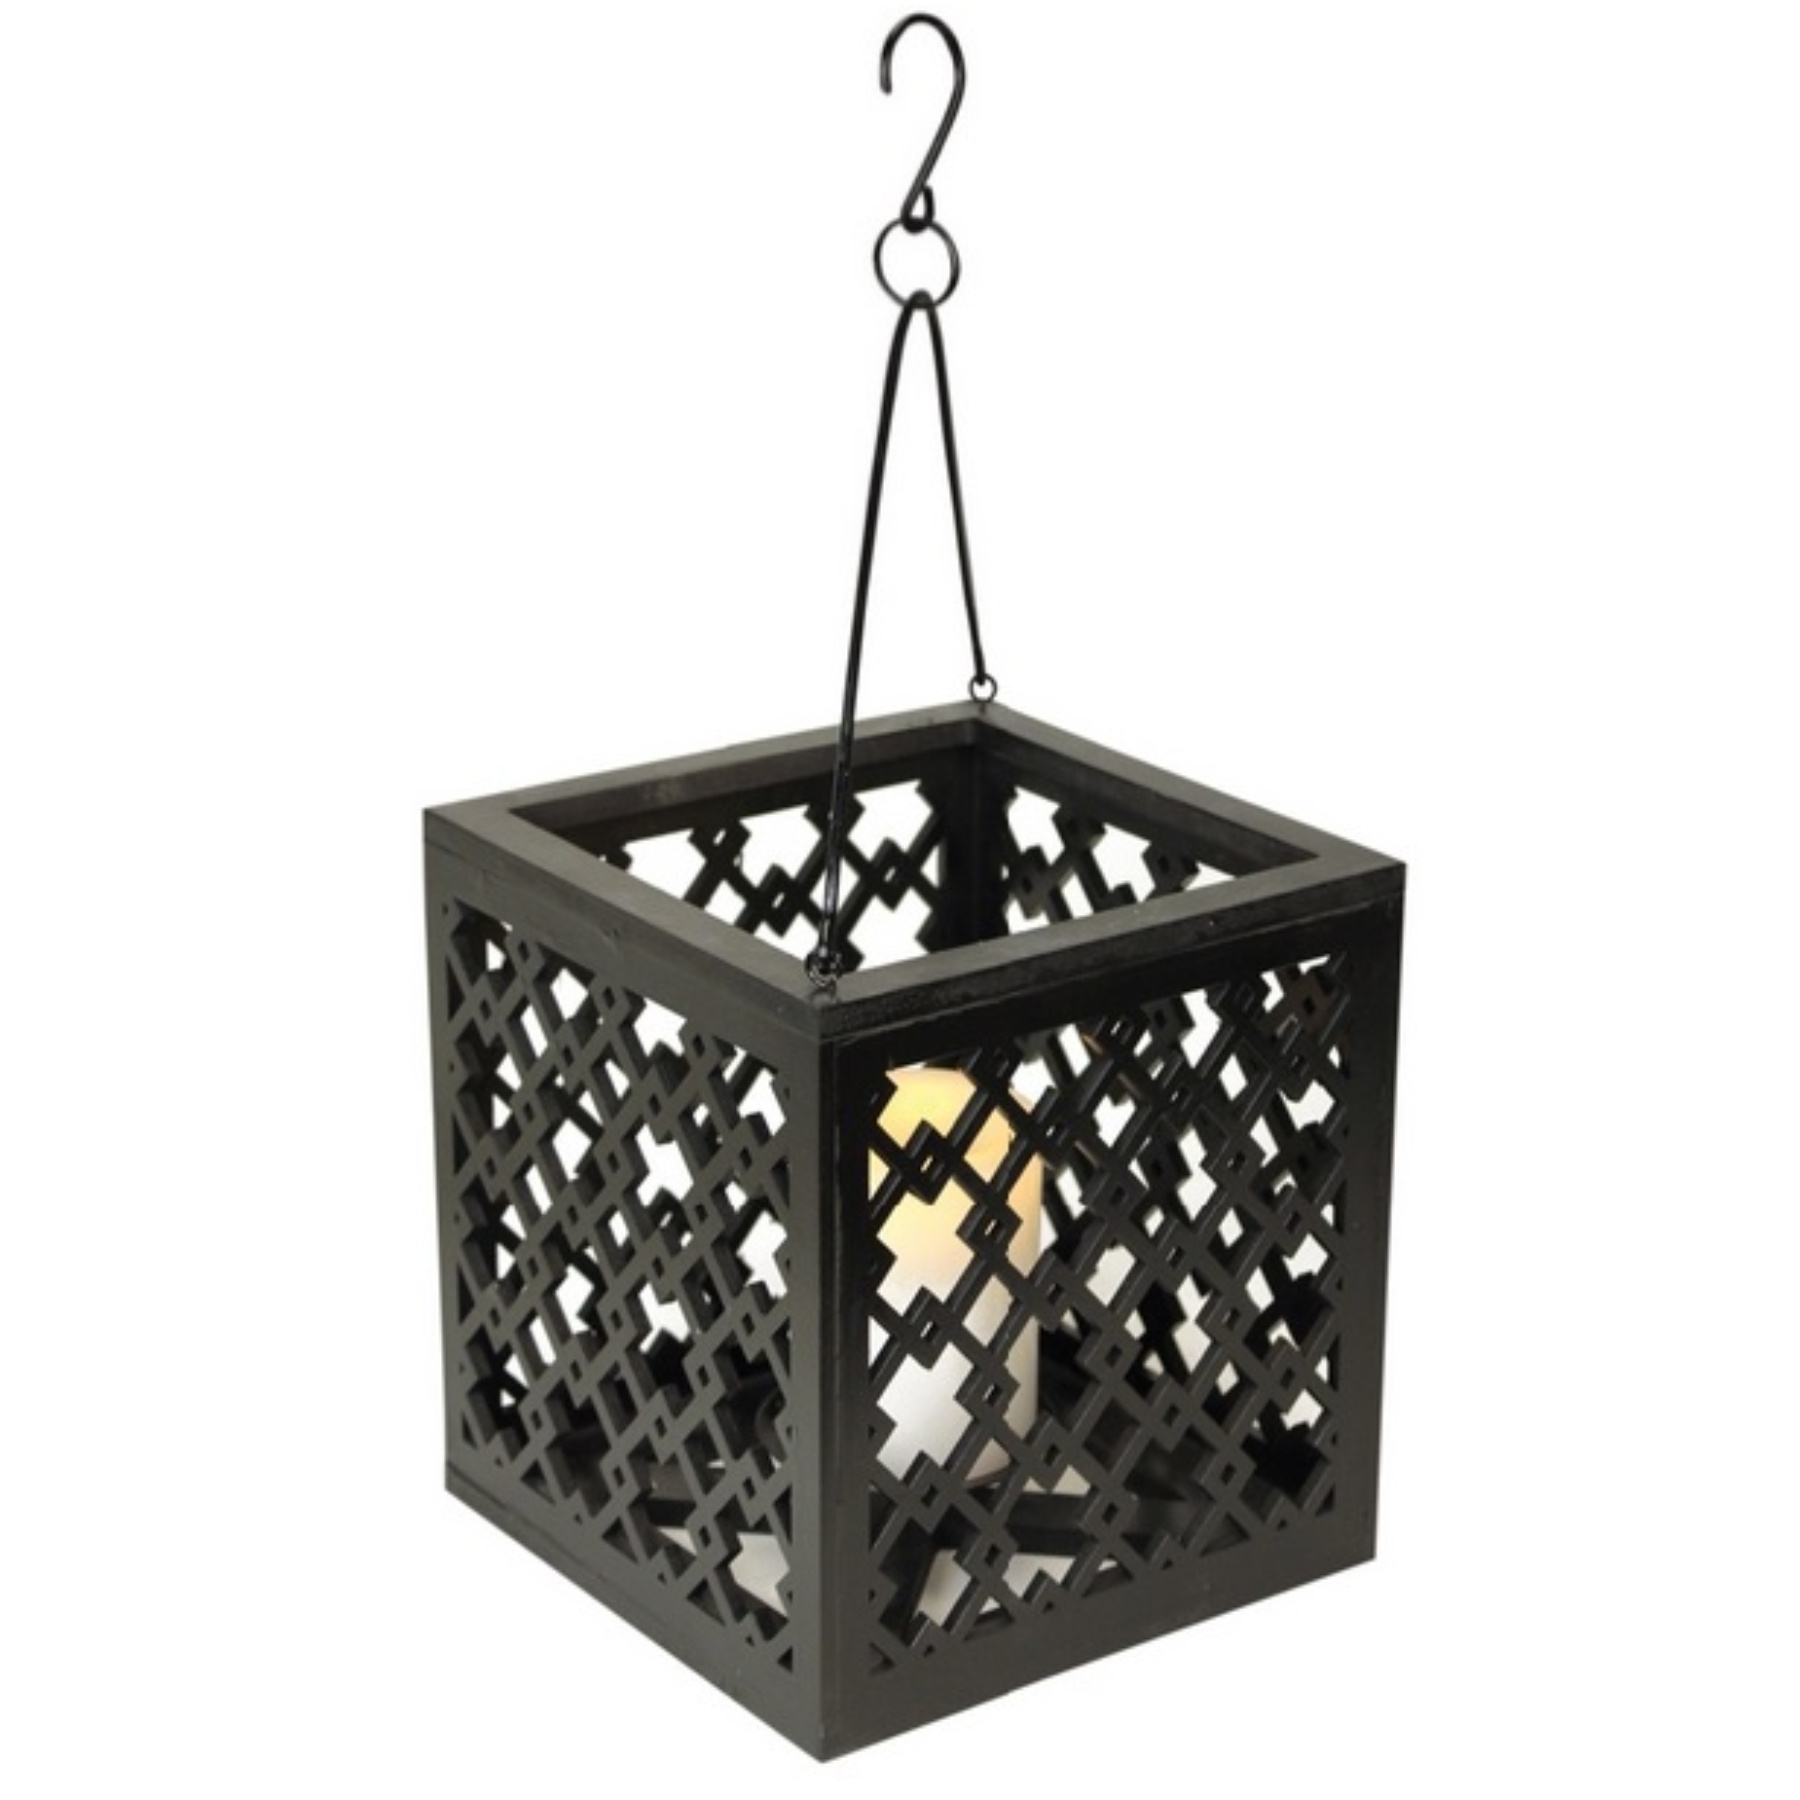 Mesmerizing candle lanterns for outdoor lighting ideas with outdoor candle lanterns and hanging candle lanterns